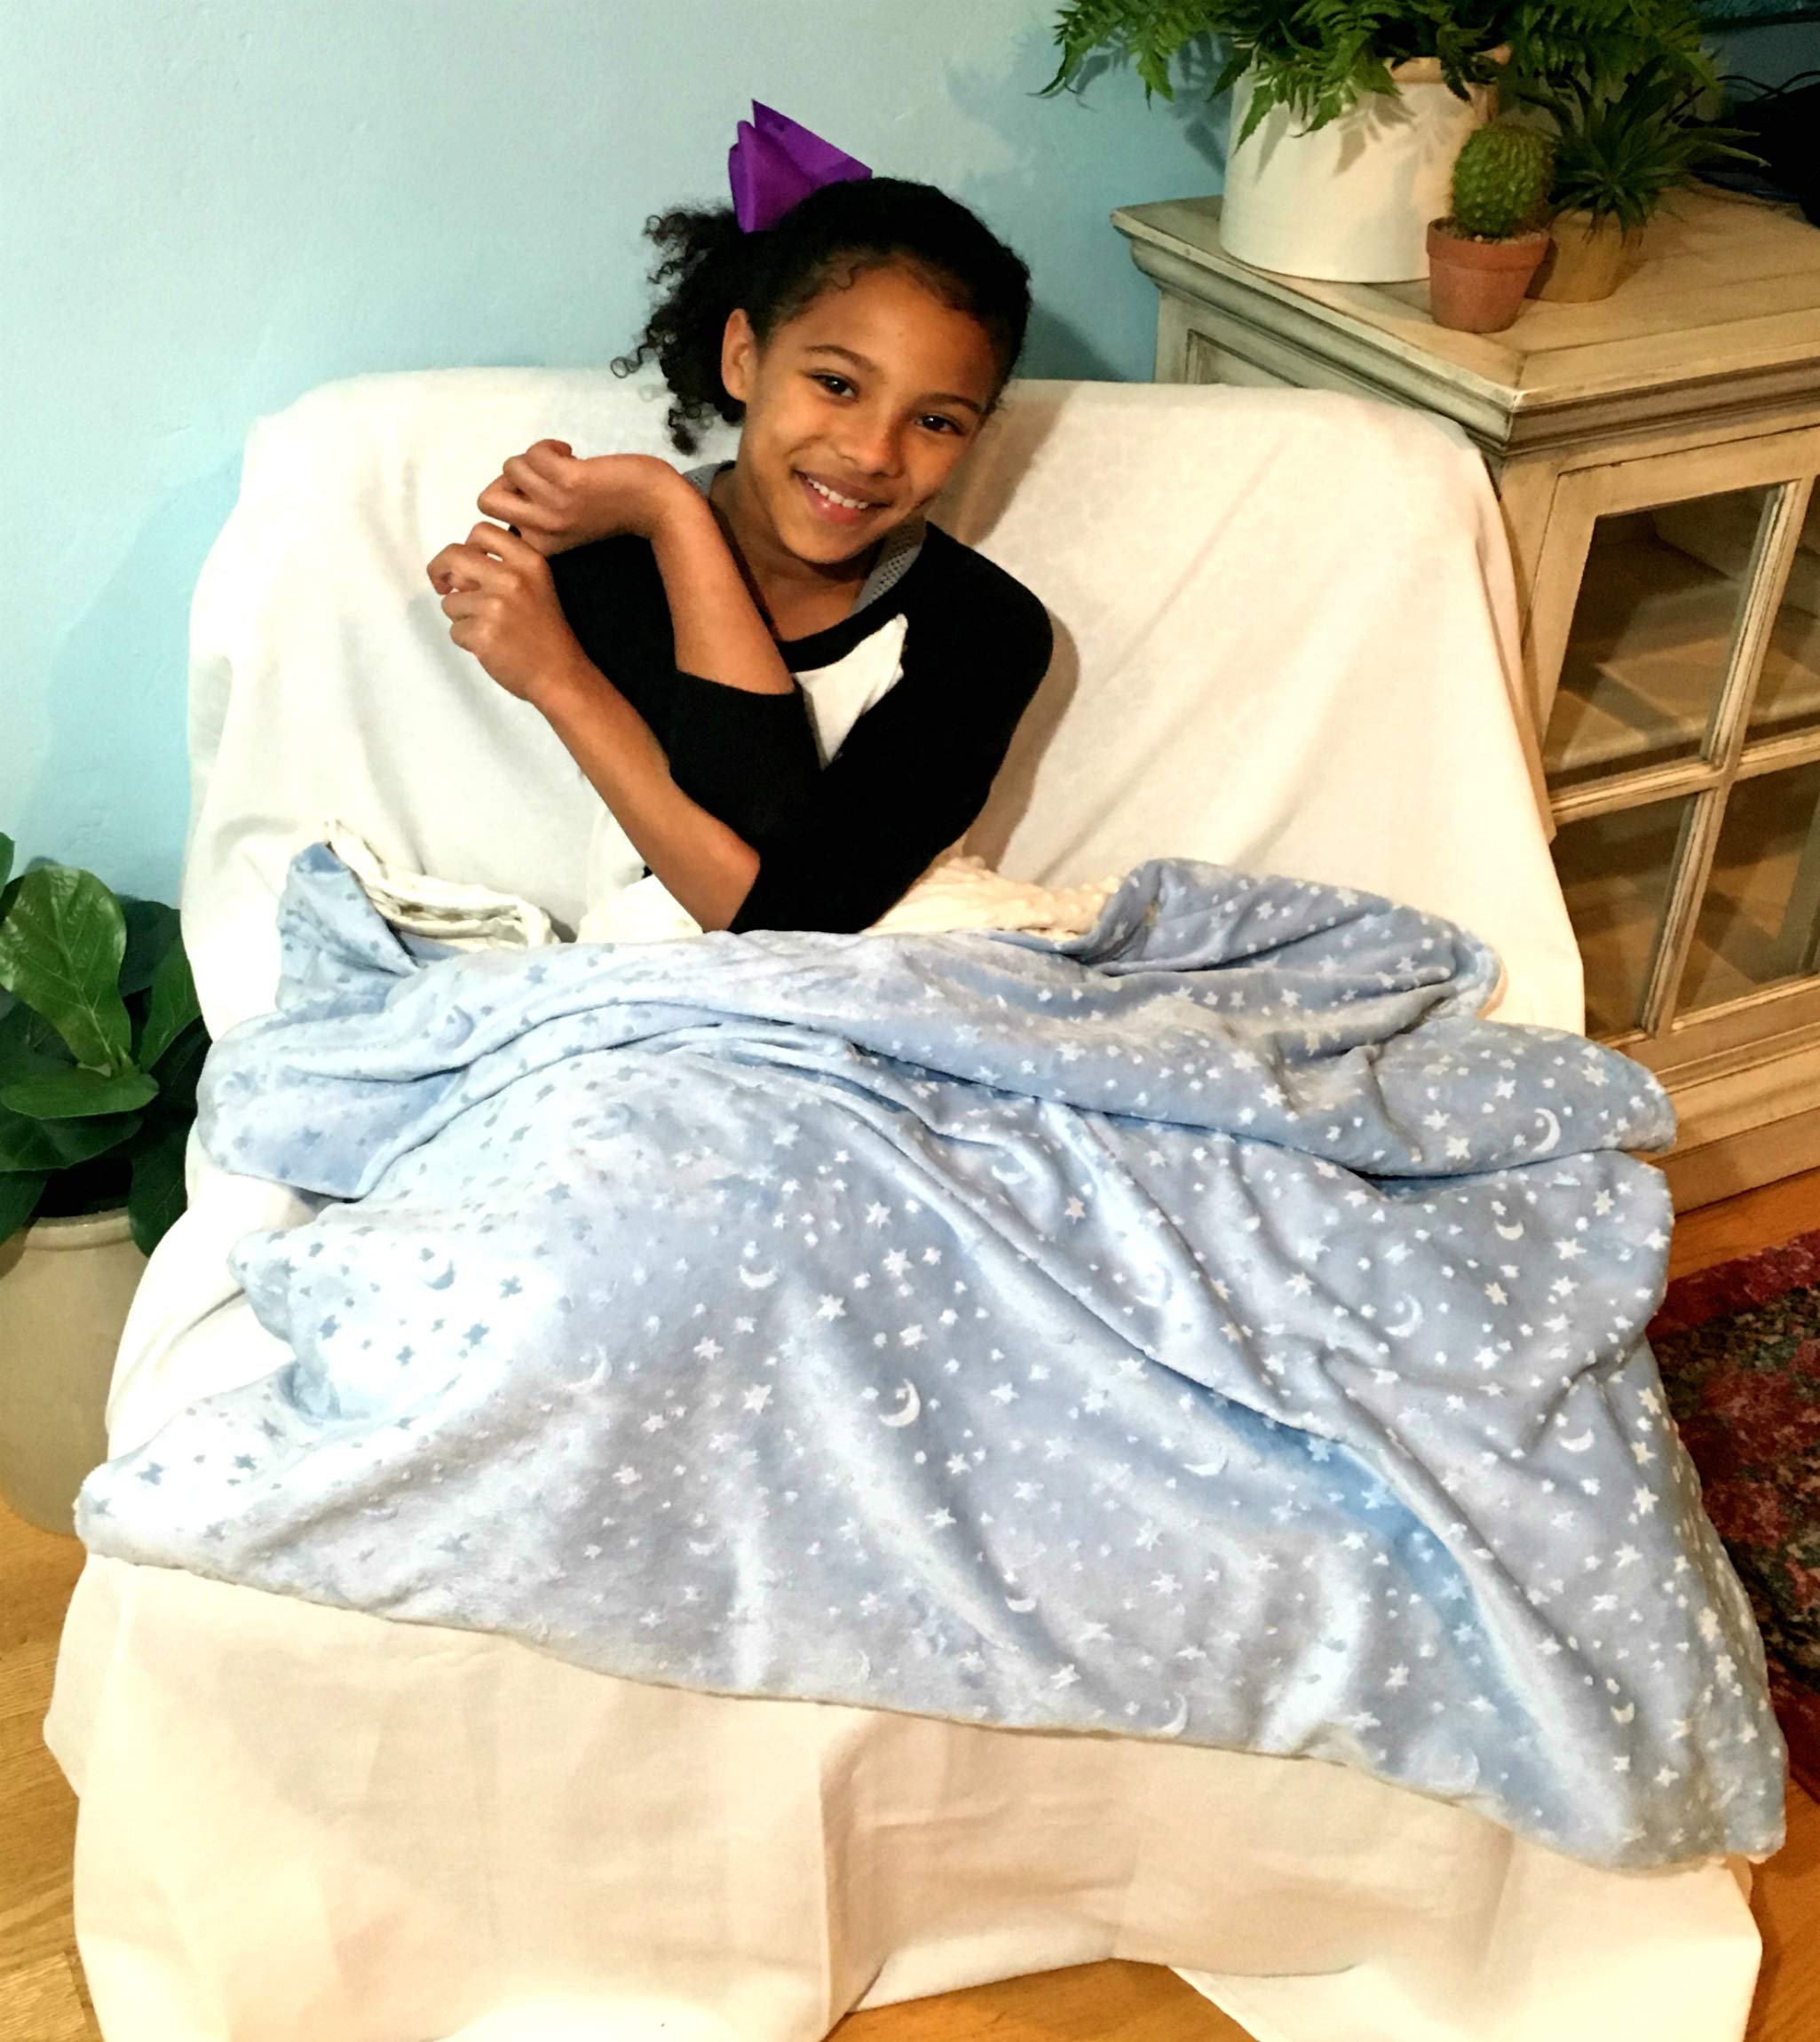 ReachTherapy Solutions))) Weighted Blanket for Kids (4 lbs & 48'' x 36'' - Above The Clouds) - Click to See More Colors & Sizes